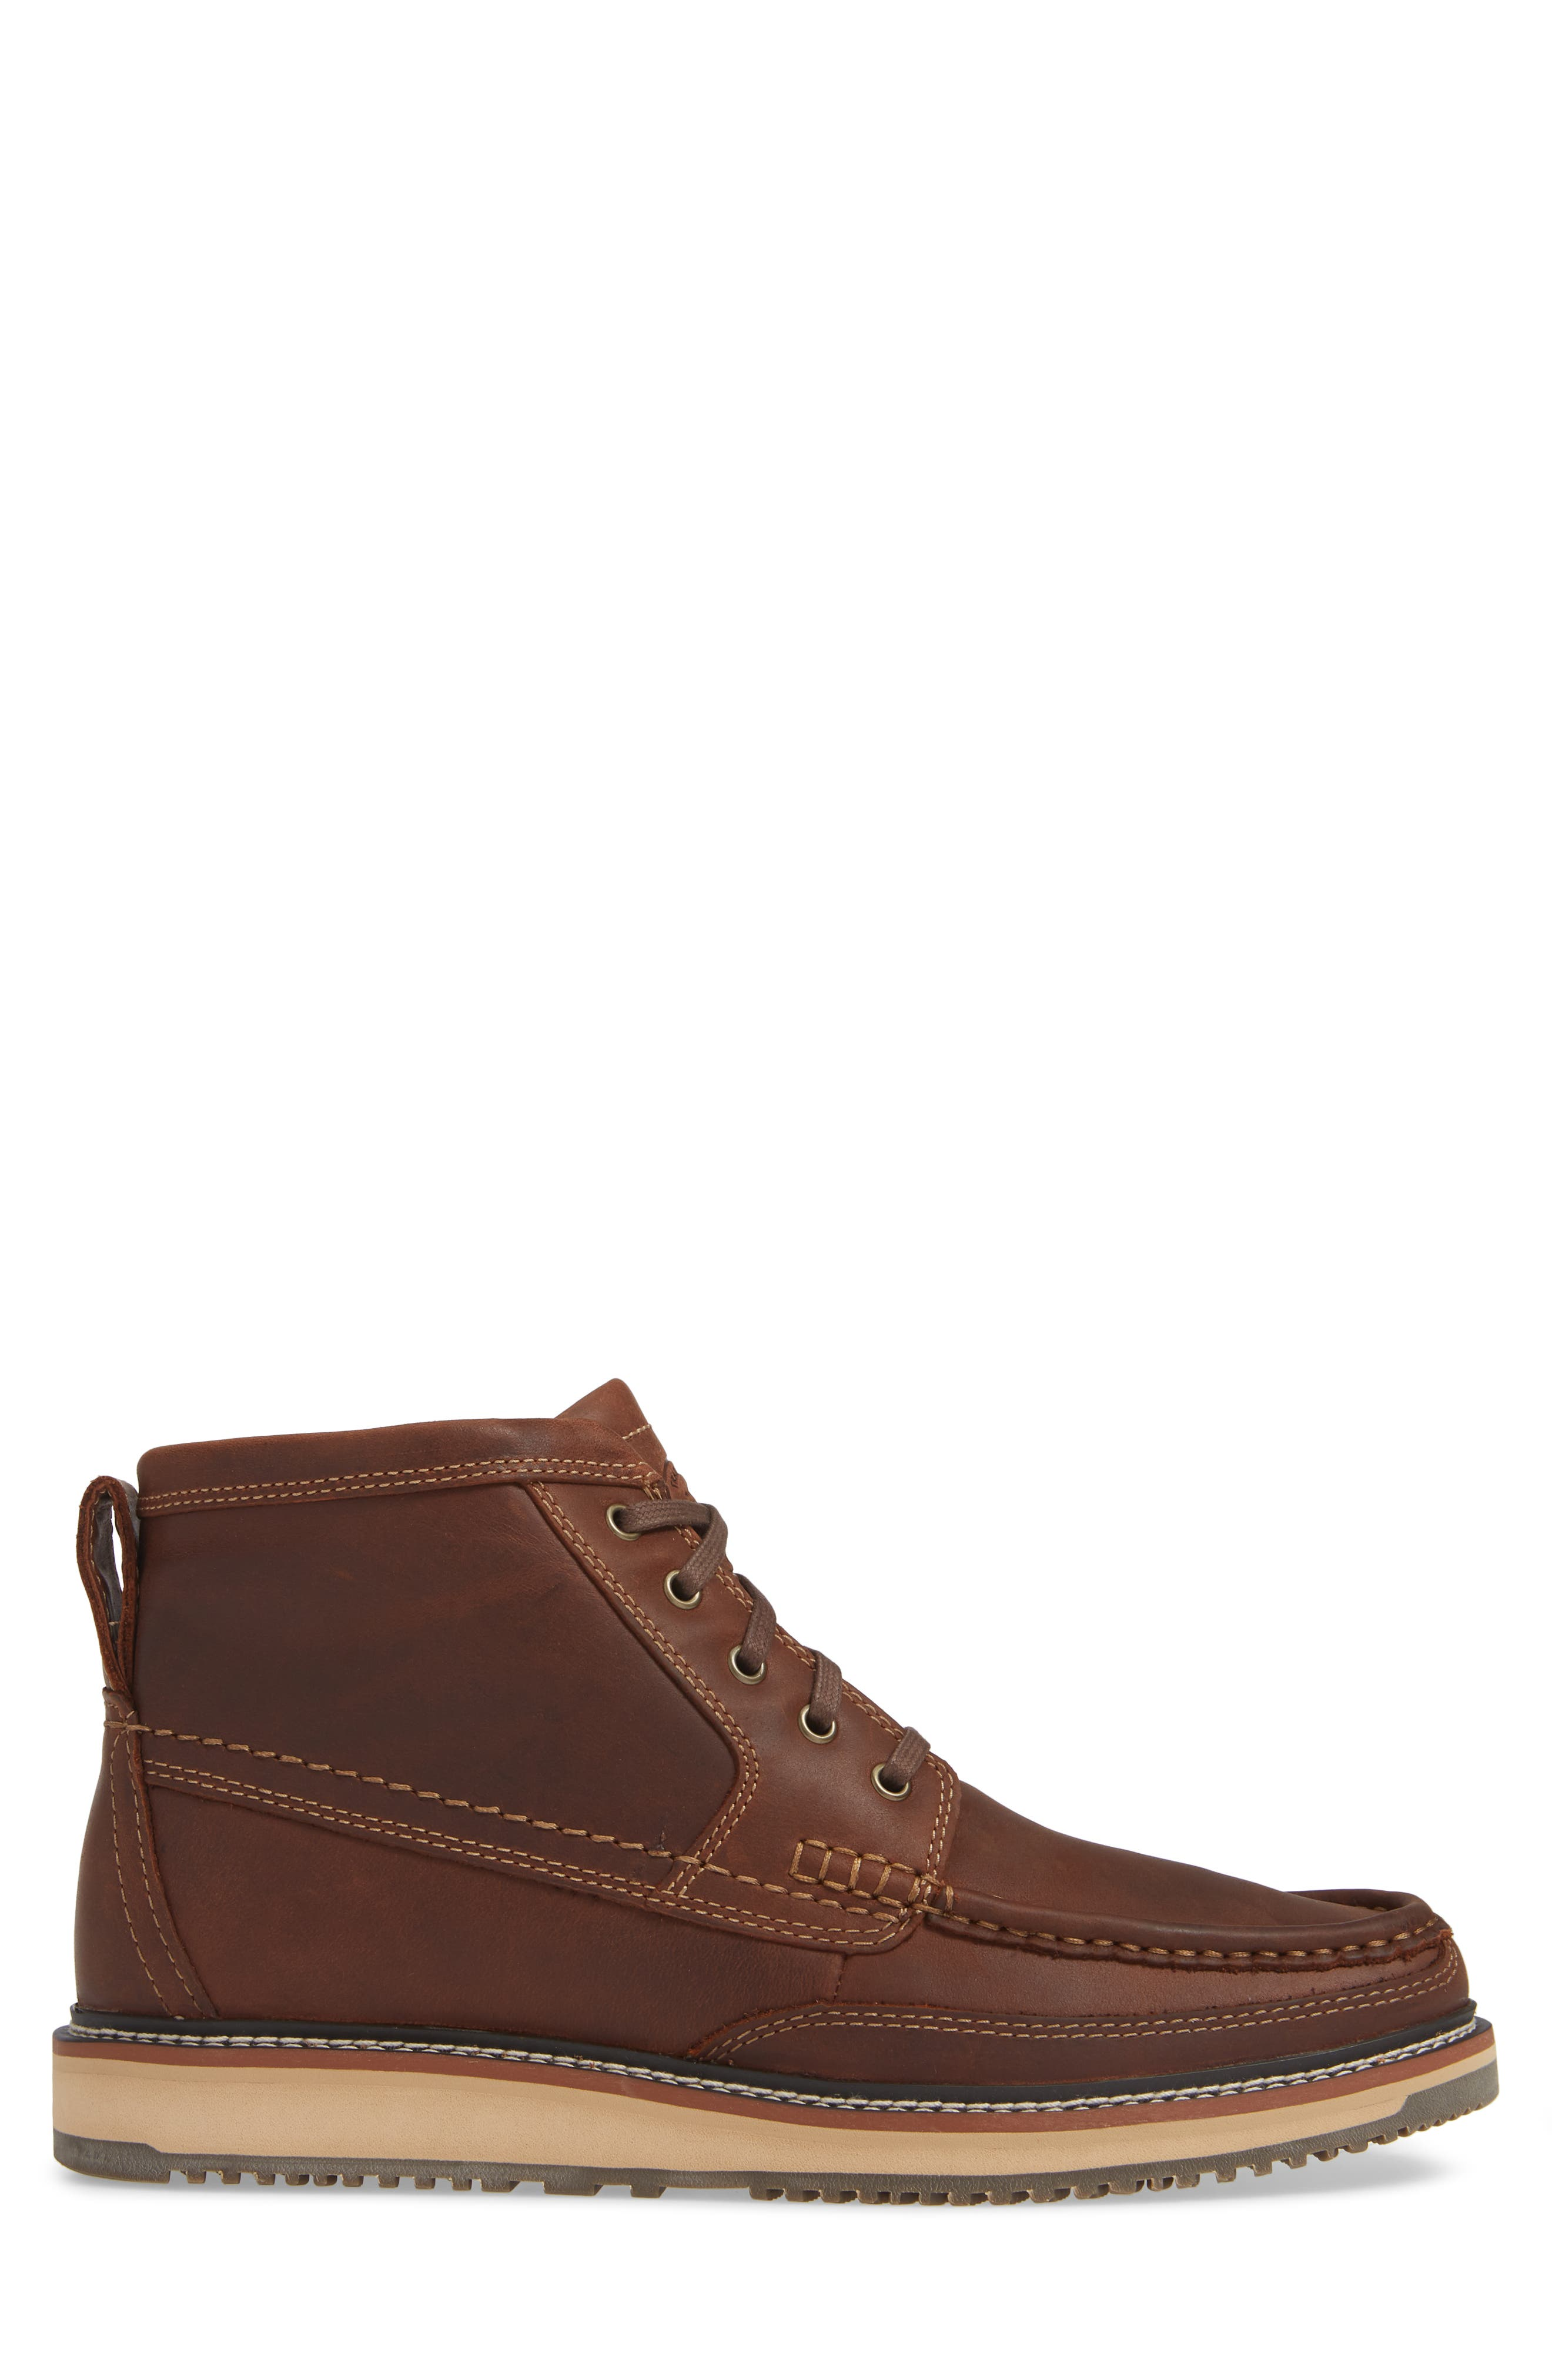 ARIAT, 'Lookout' Moc Toe Boot, Alternate thumbnail 3, color, FOOTHILL BROWN LEATHER